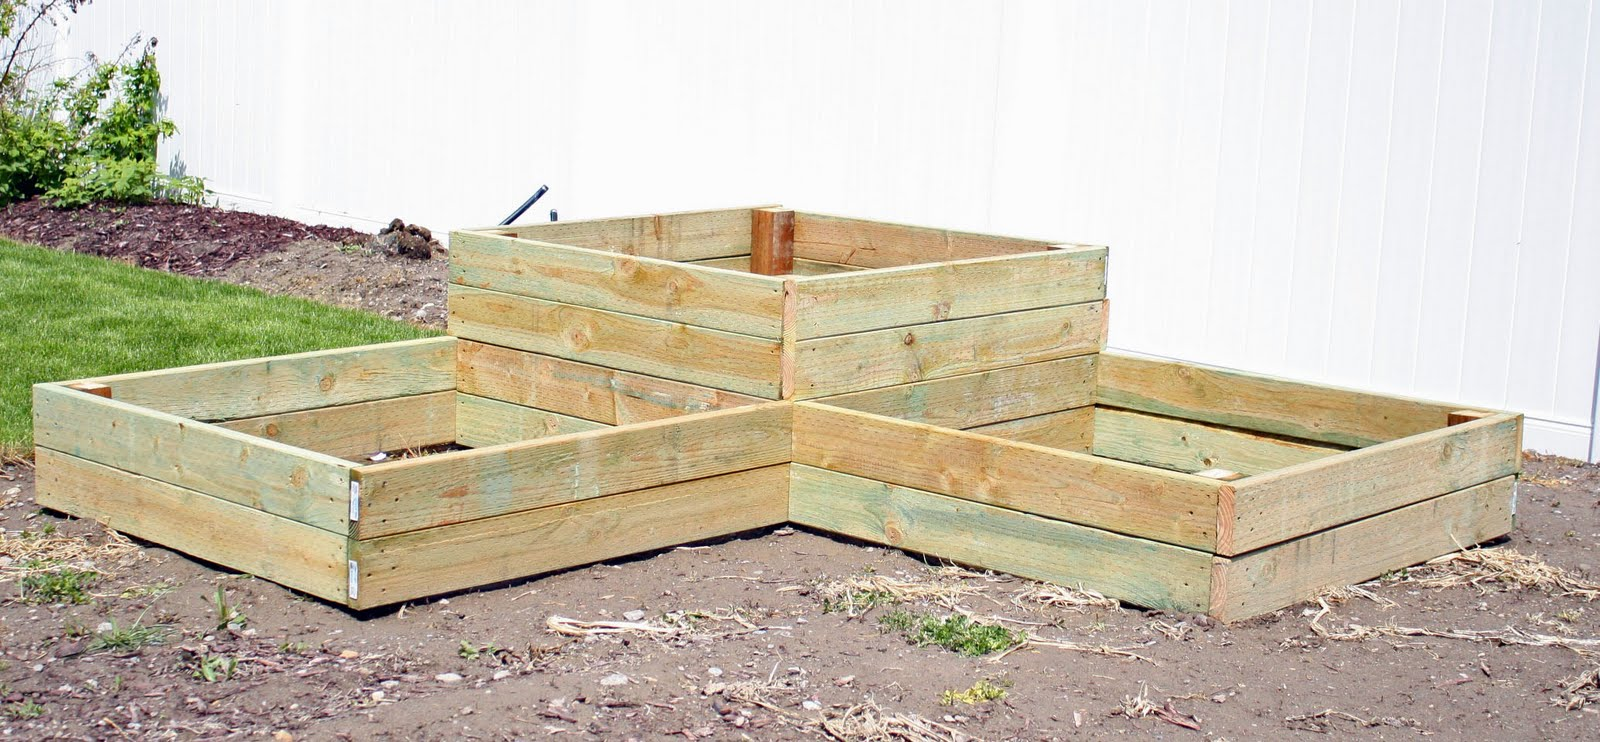 Creative mommas diy tiered raised garden beds Raised garden beds